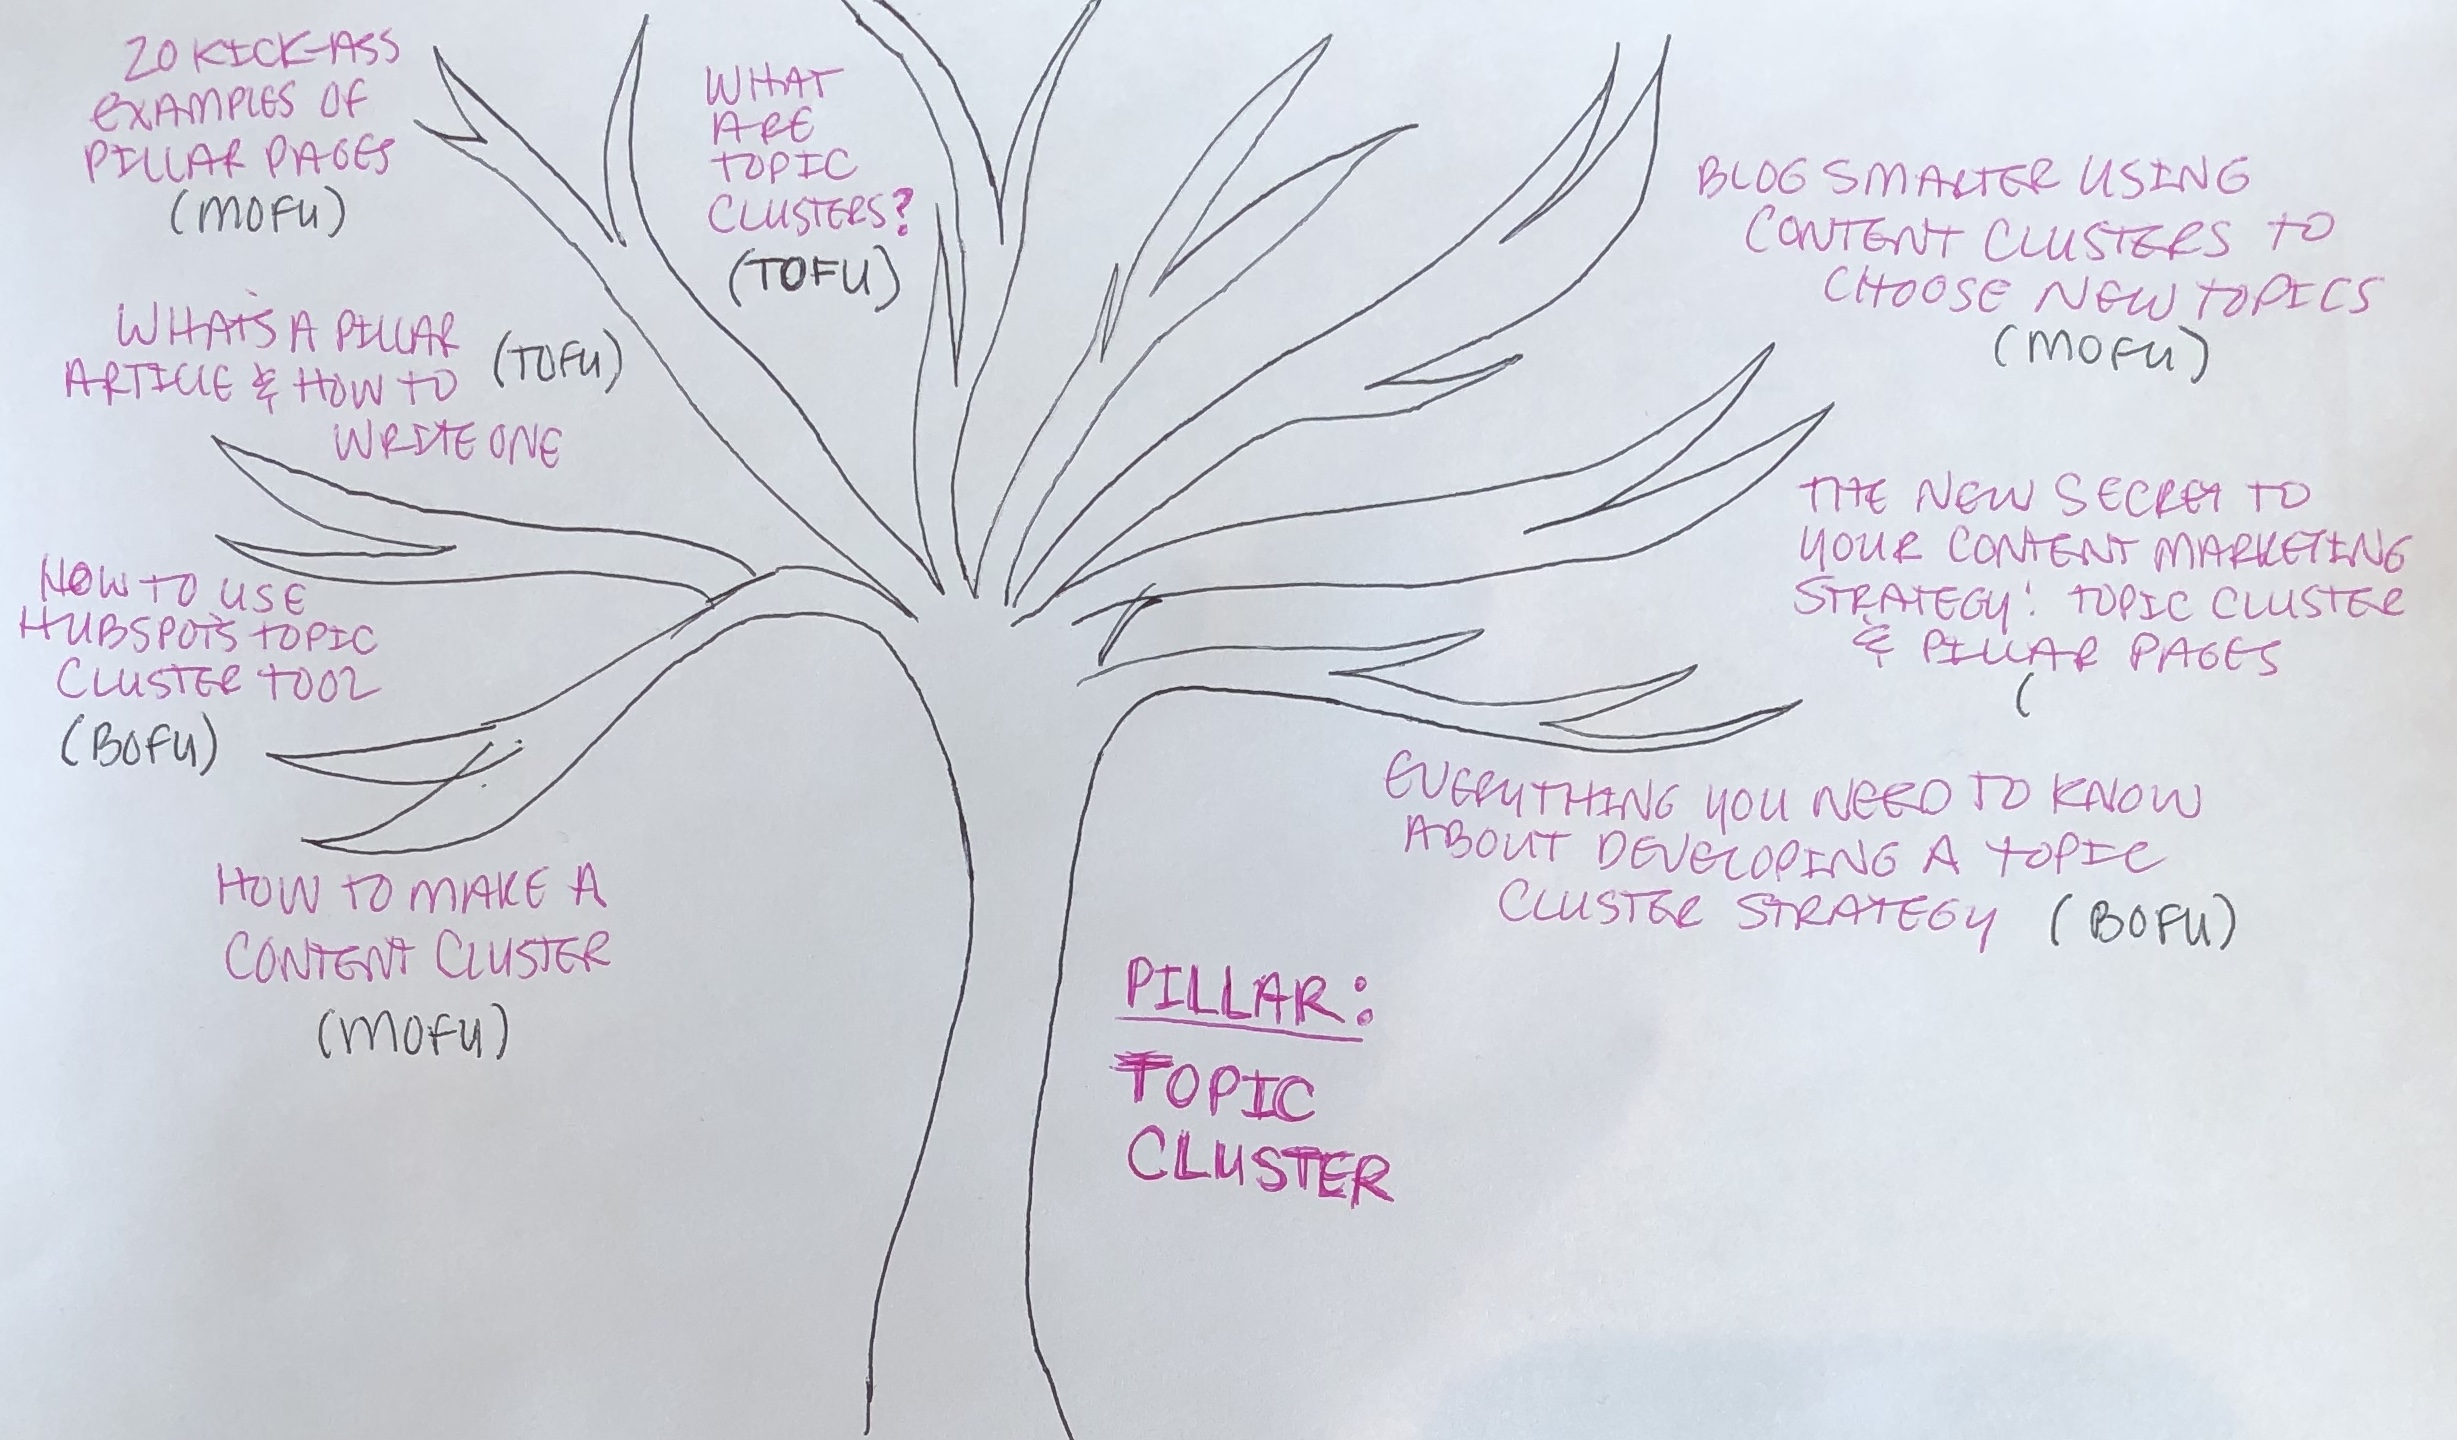 How to Pick Strategic Blog Post Ideas Using Topic Clusters